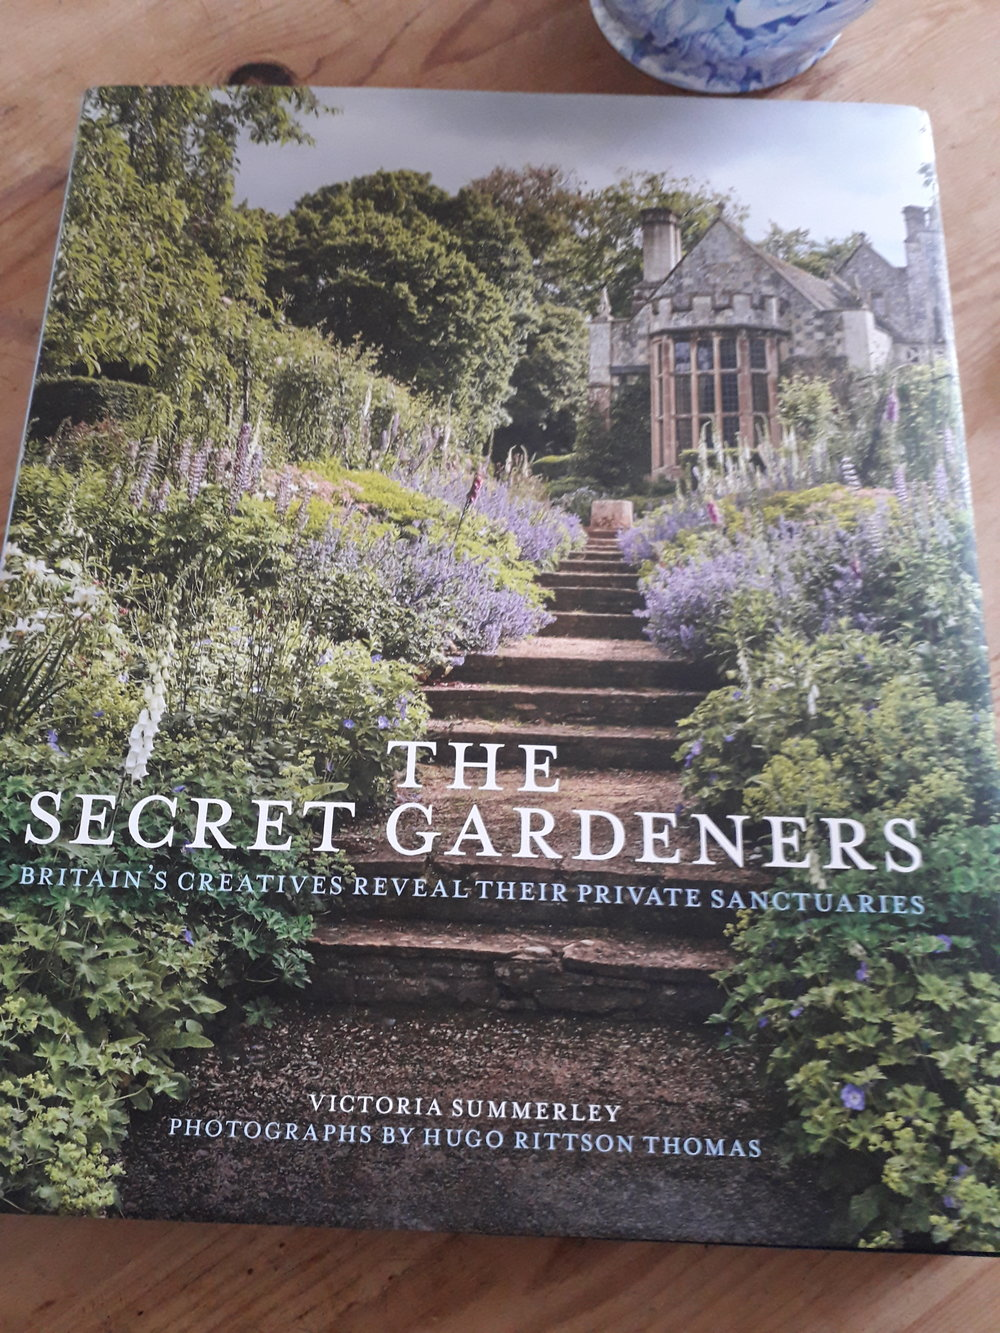 This month's reading and inspiration is…..March 2019 - A wonderful insight into the gardens of well known creatives, such as Kirstie Allsop, Julian Clary, Rupert Everett and many more. Not only does it provide a glimpse of the magnificent homes but also the all important space surrounding them. Incorporating formality, wildness, water, follies, vegetables and much much more. There is a garden for everyone in this book.Published by: Quarto Publishing Ltd 2017